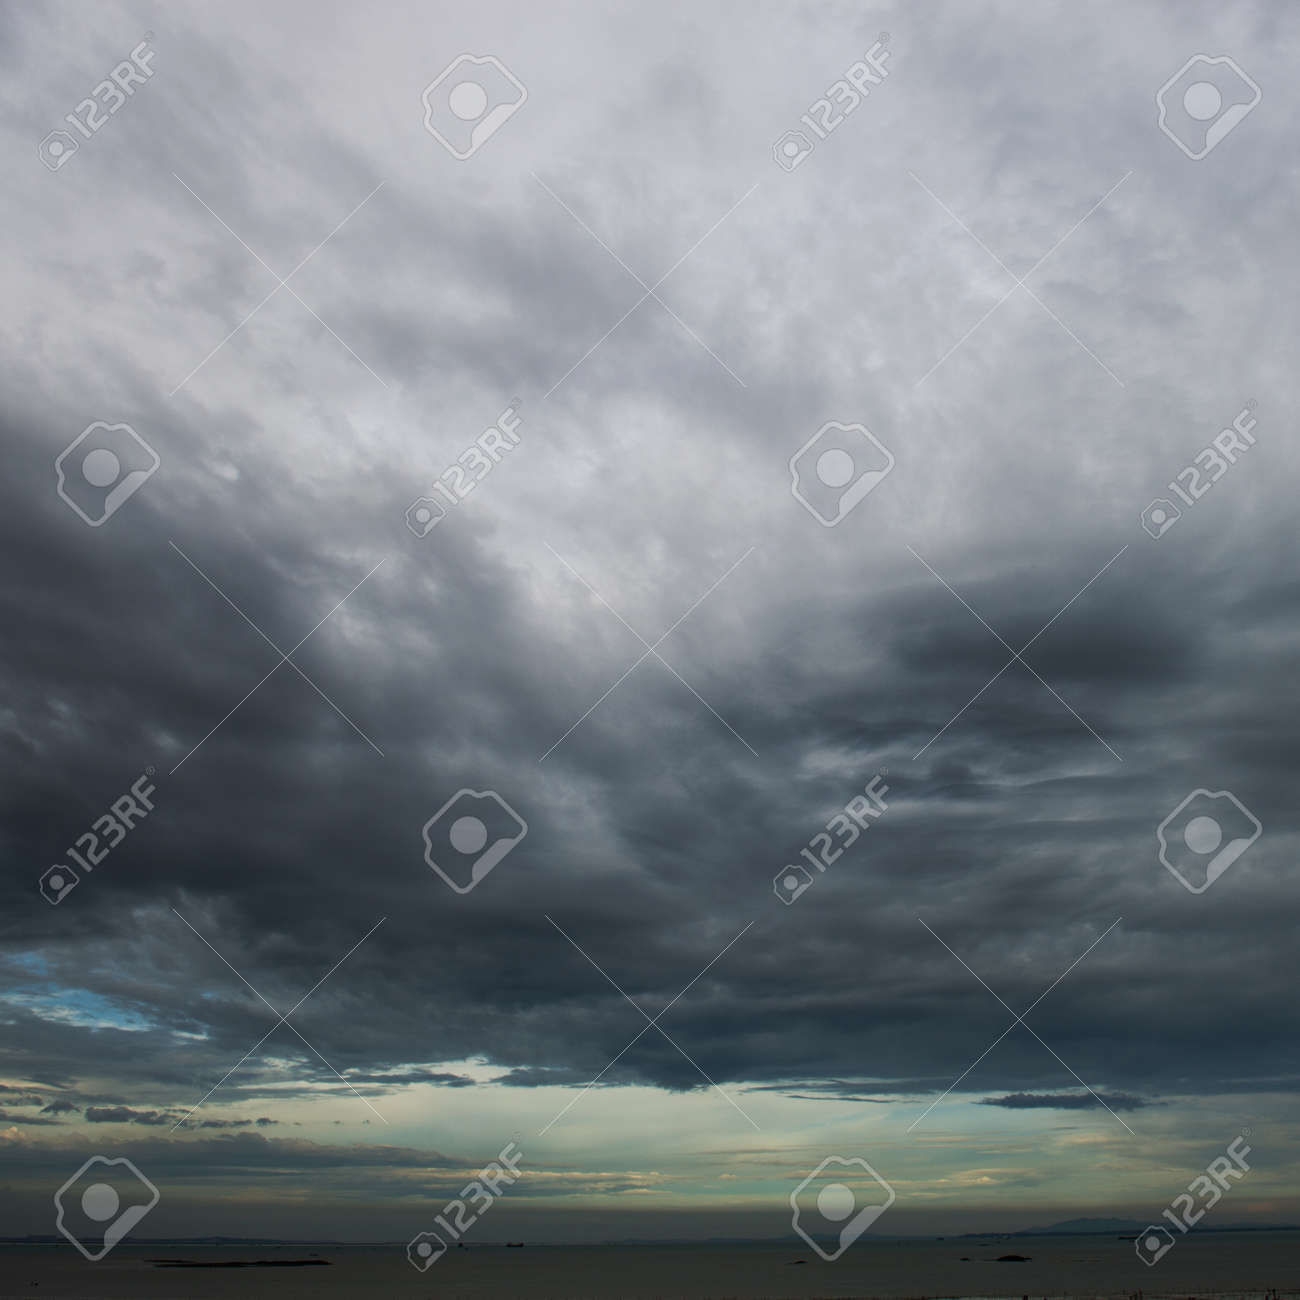 Background of dark clouds before a thunder-storm Stock Photo - 24936394